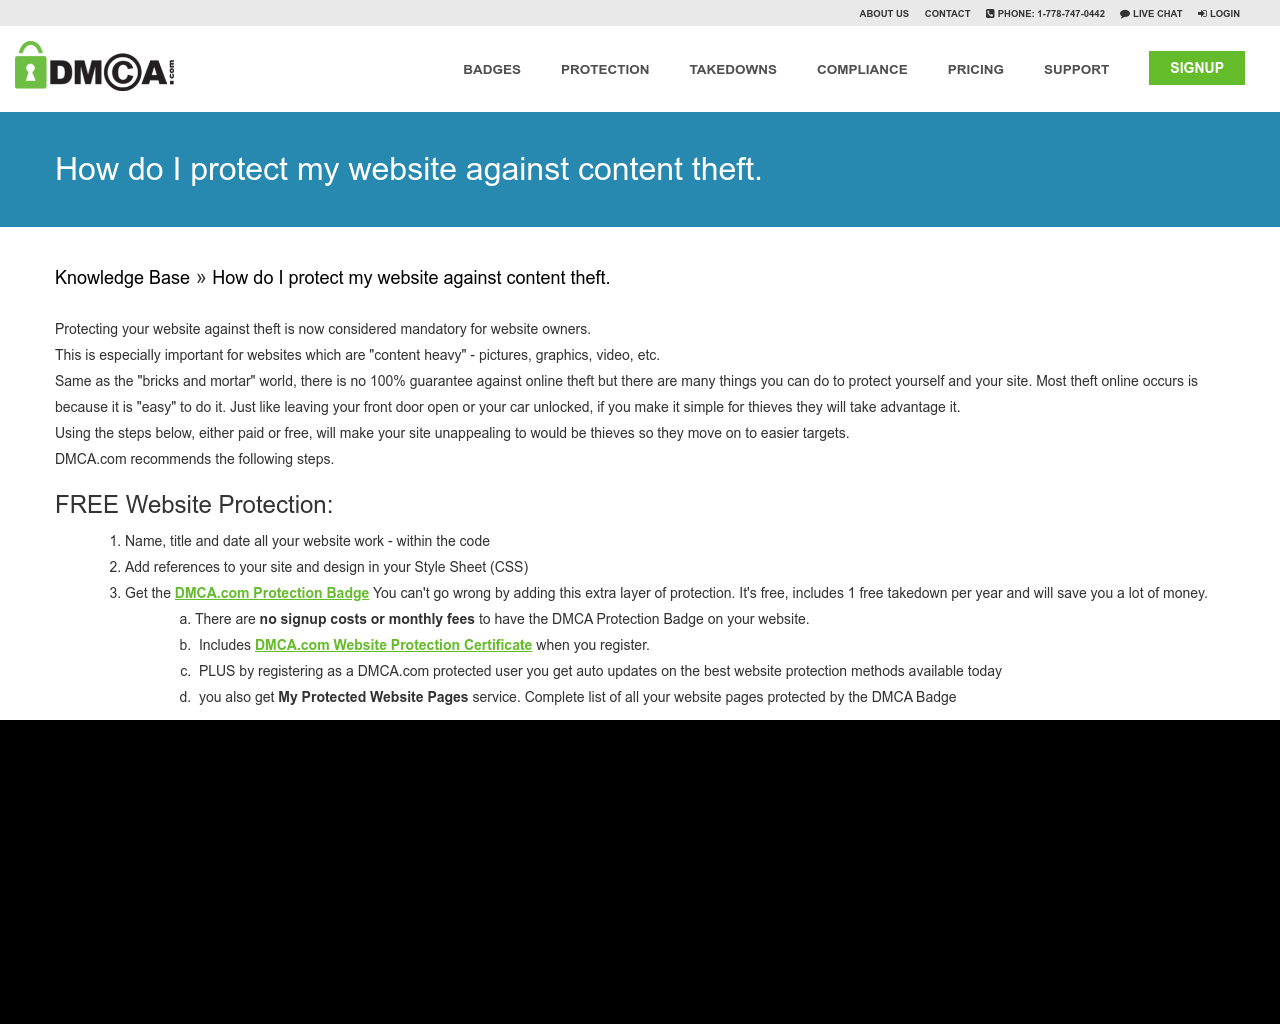 How do I protect my website against content theft